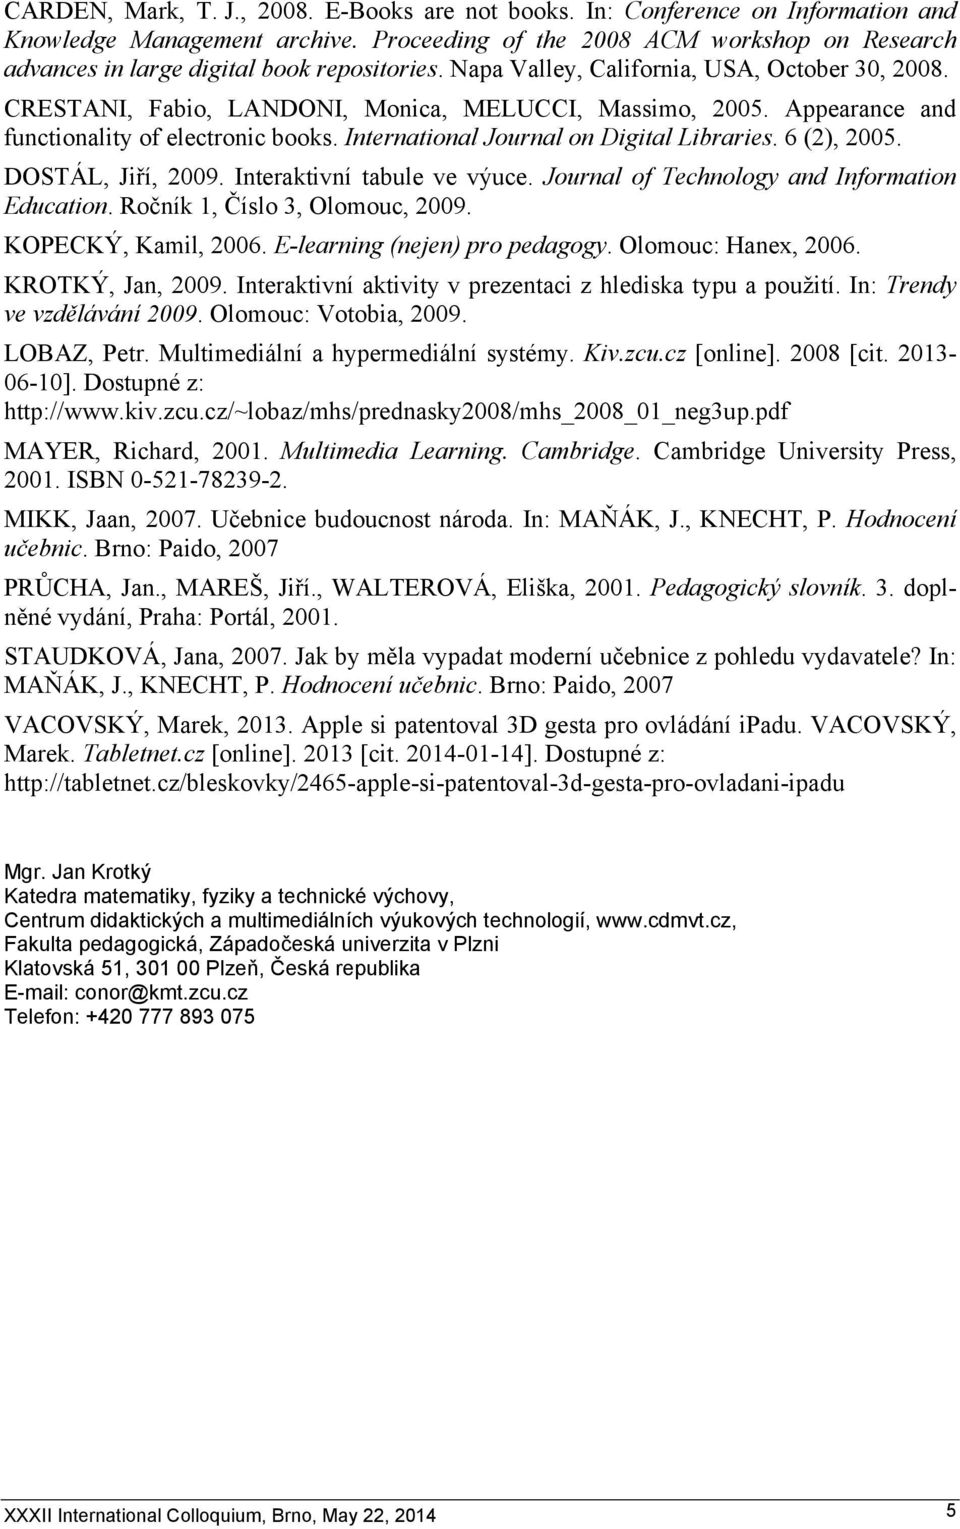 Appearance and functionality of electronic books. International Journal on Digital Libraries. 6 (2), 2005. DOSTÁL, Jiří, 2009. Interaktivní tabule ve výuce.